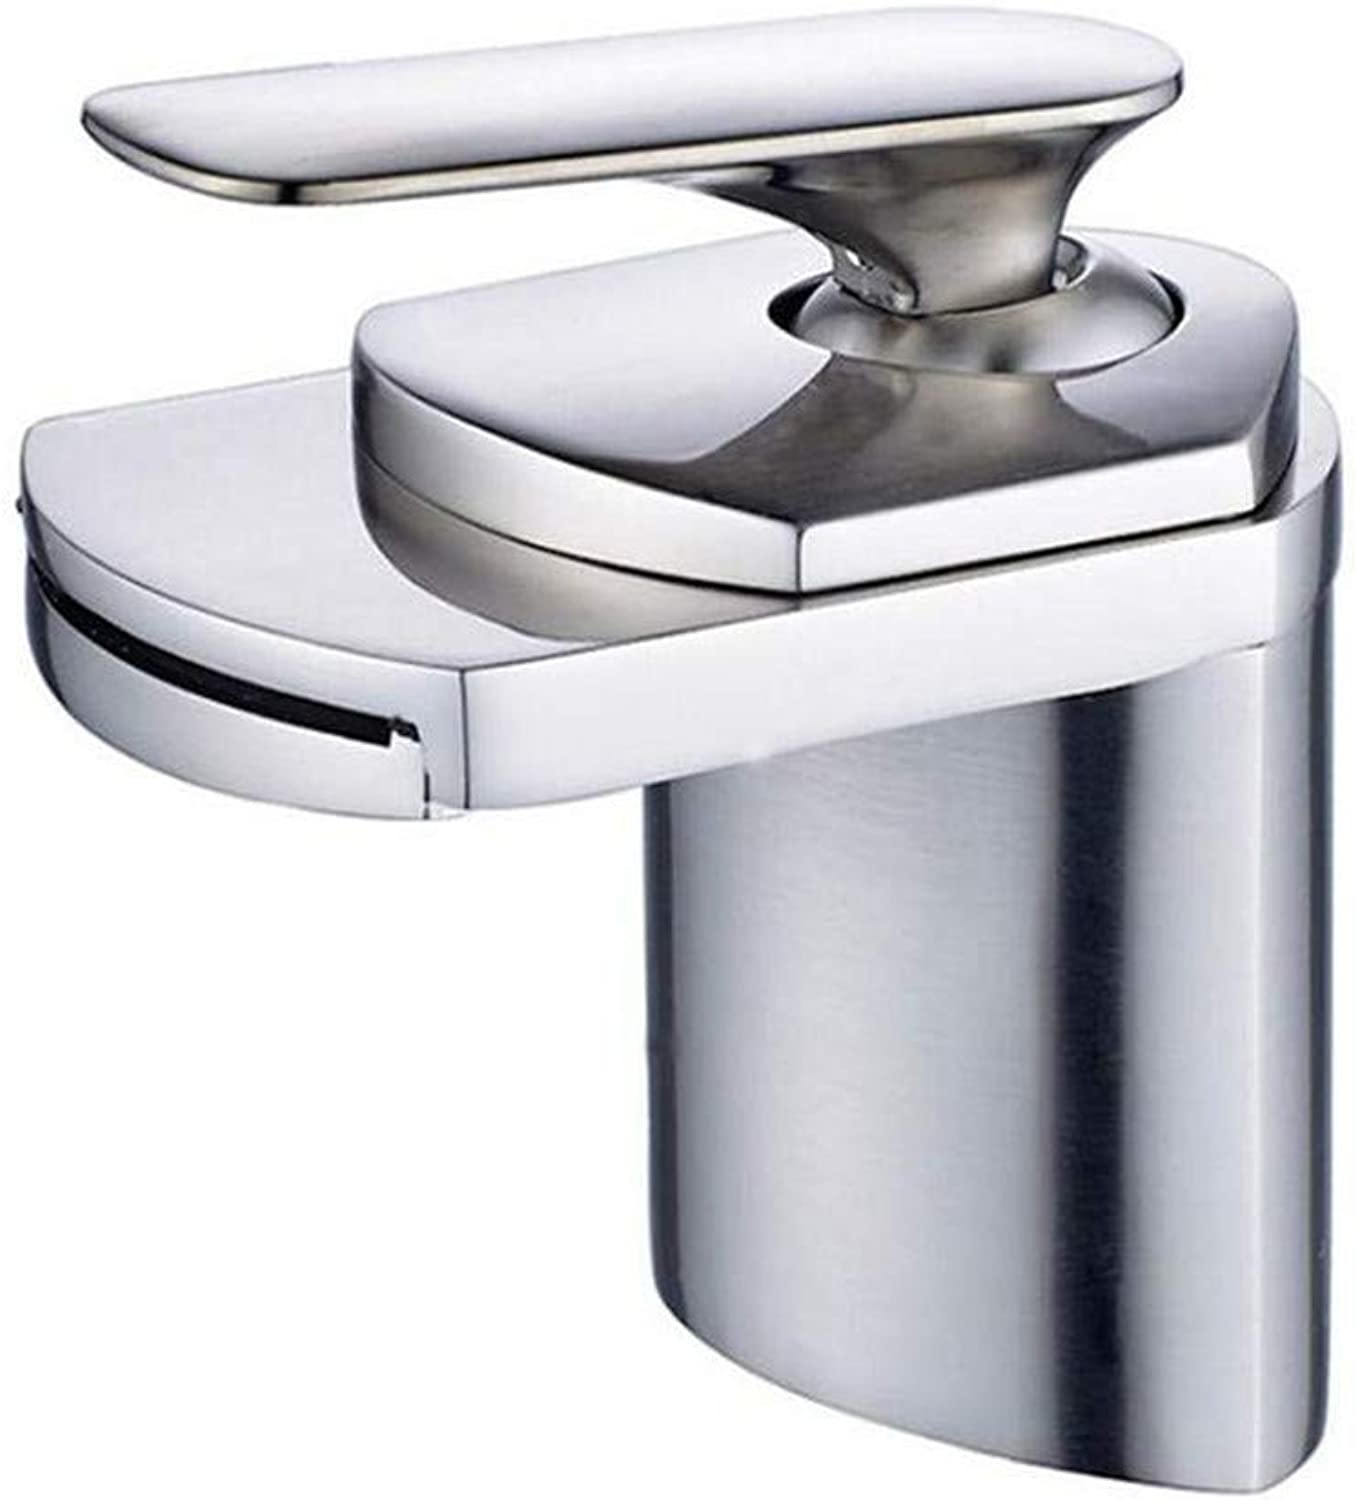 Modern Brass Chrome Hot and Cold Water All Copper Deck Waterfall Basin Mixer Faucet Brush Nickel Width Tank Ship Sink Water Tap